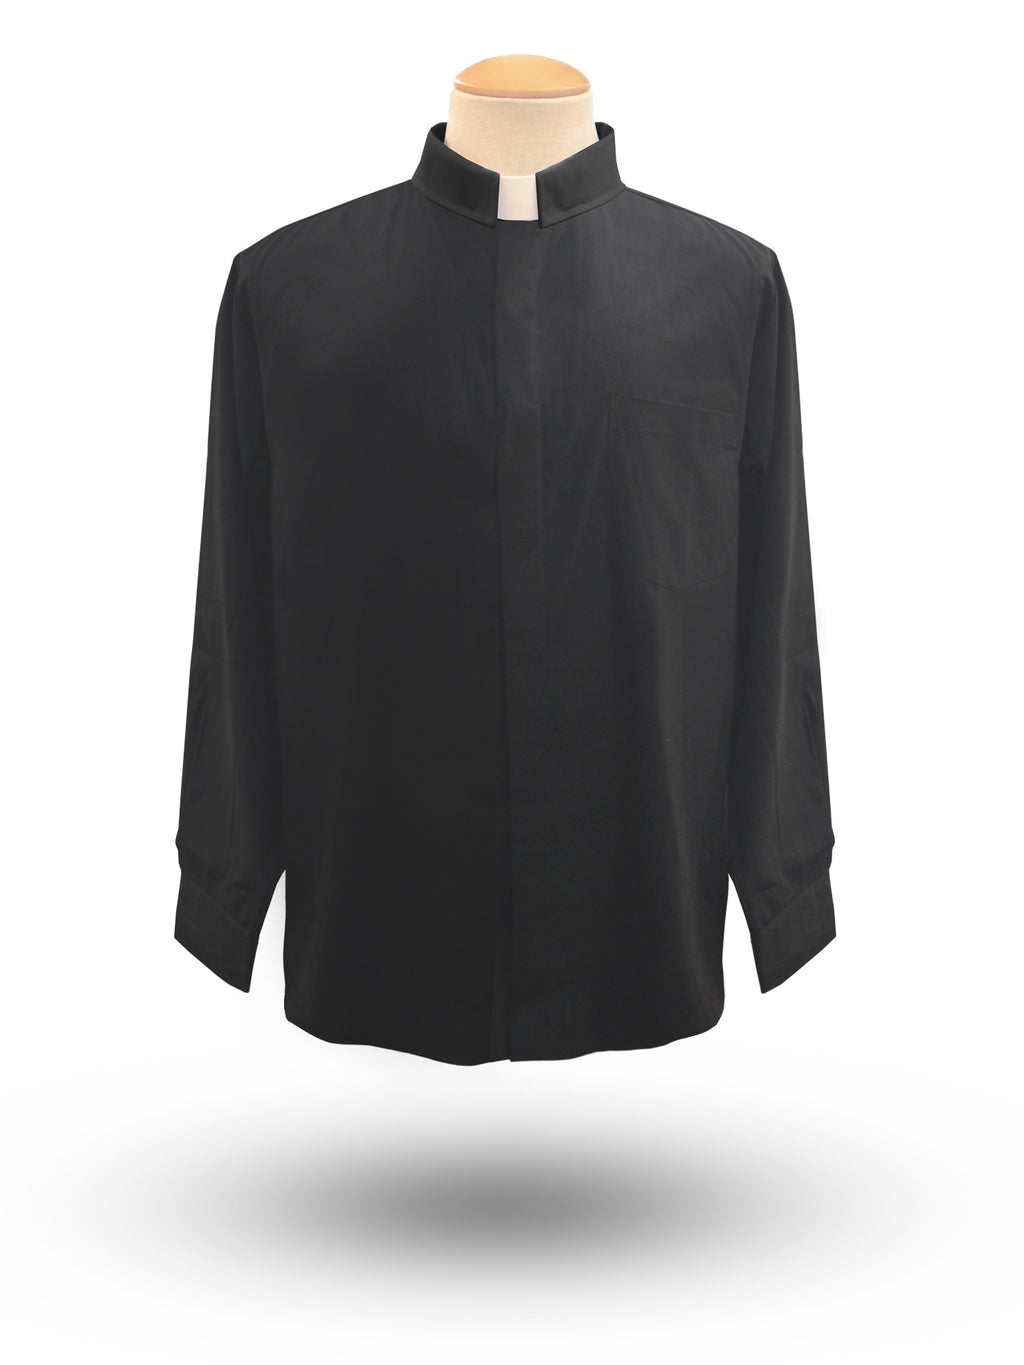 Men's Long Sleeve Tab Collar Clergy Shirt in Black